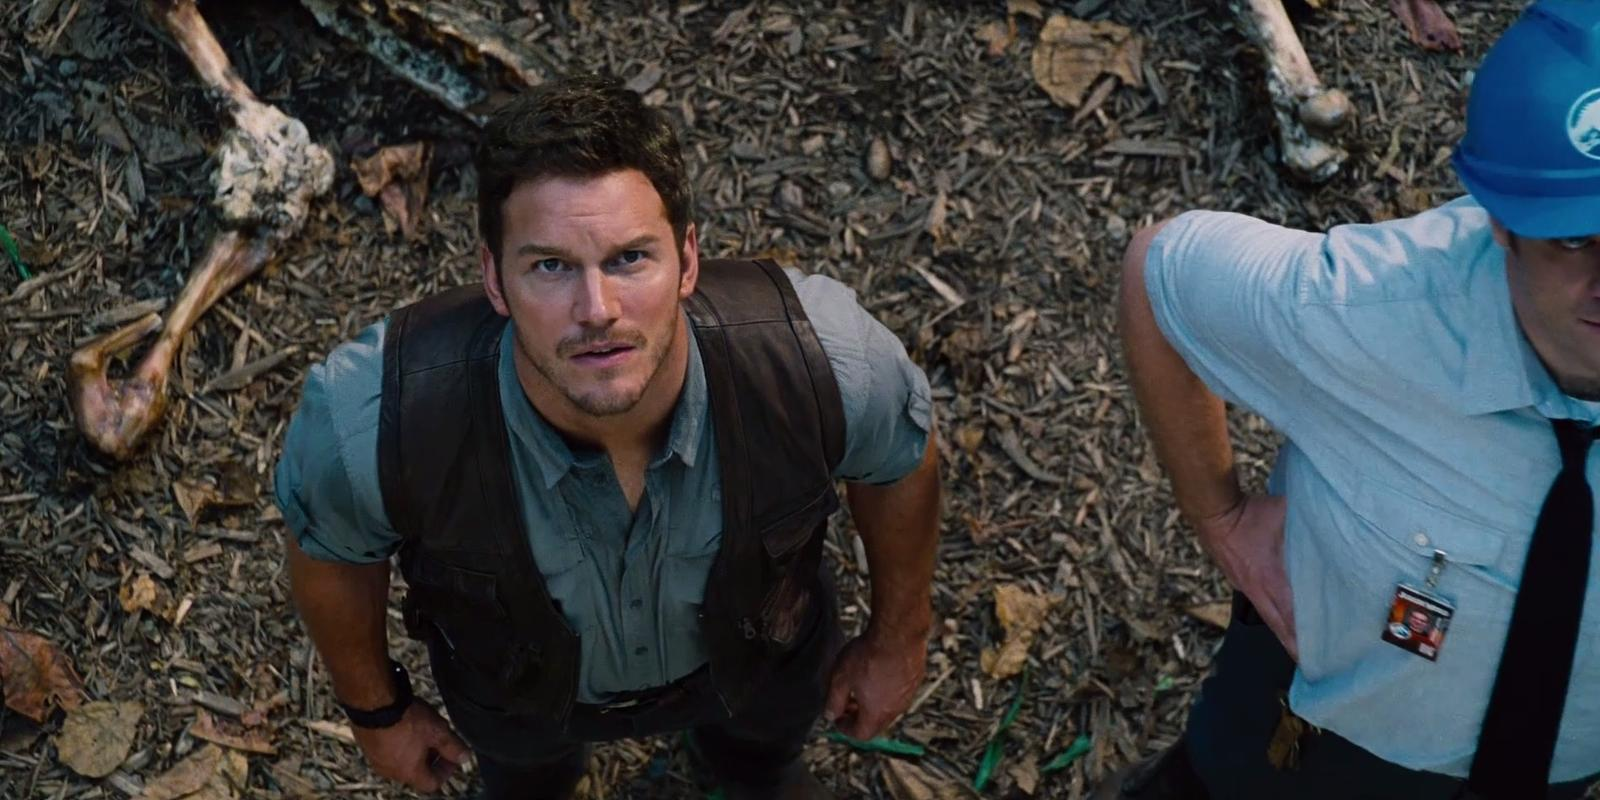 Jurassic World 2 gearing up to bring back another classic dinosaur